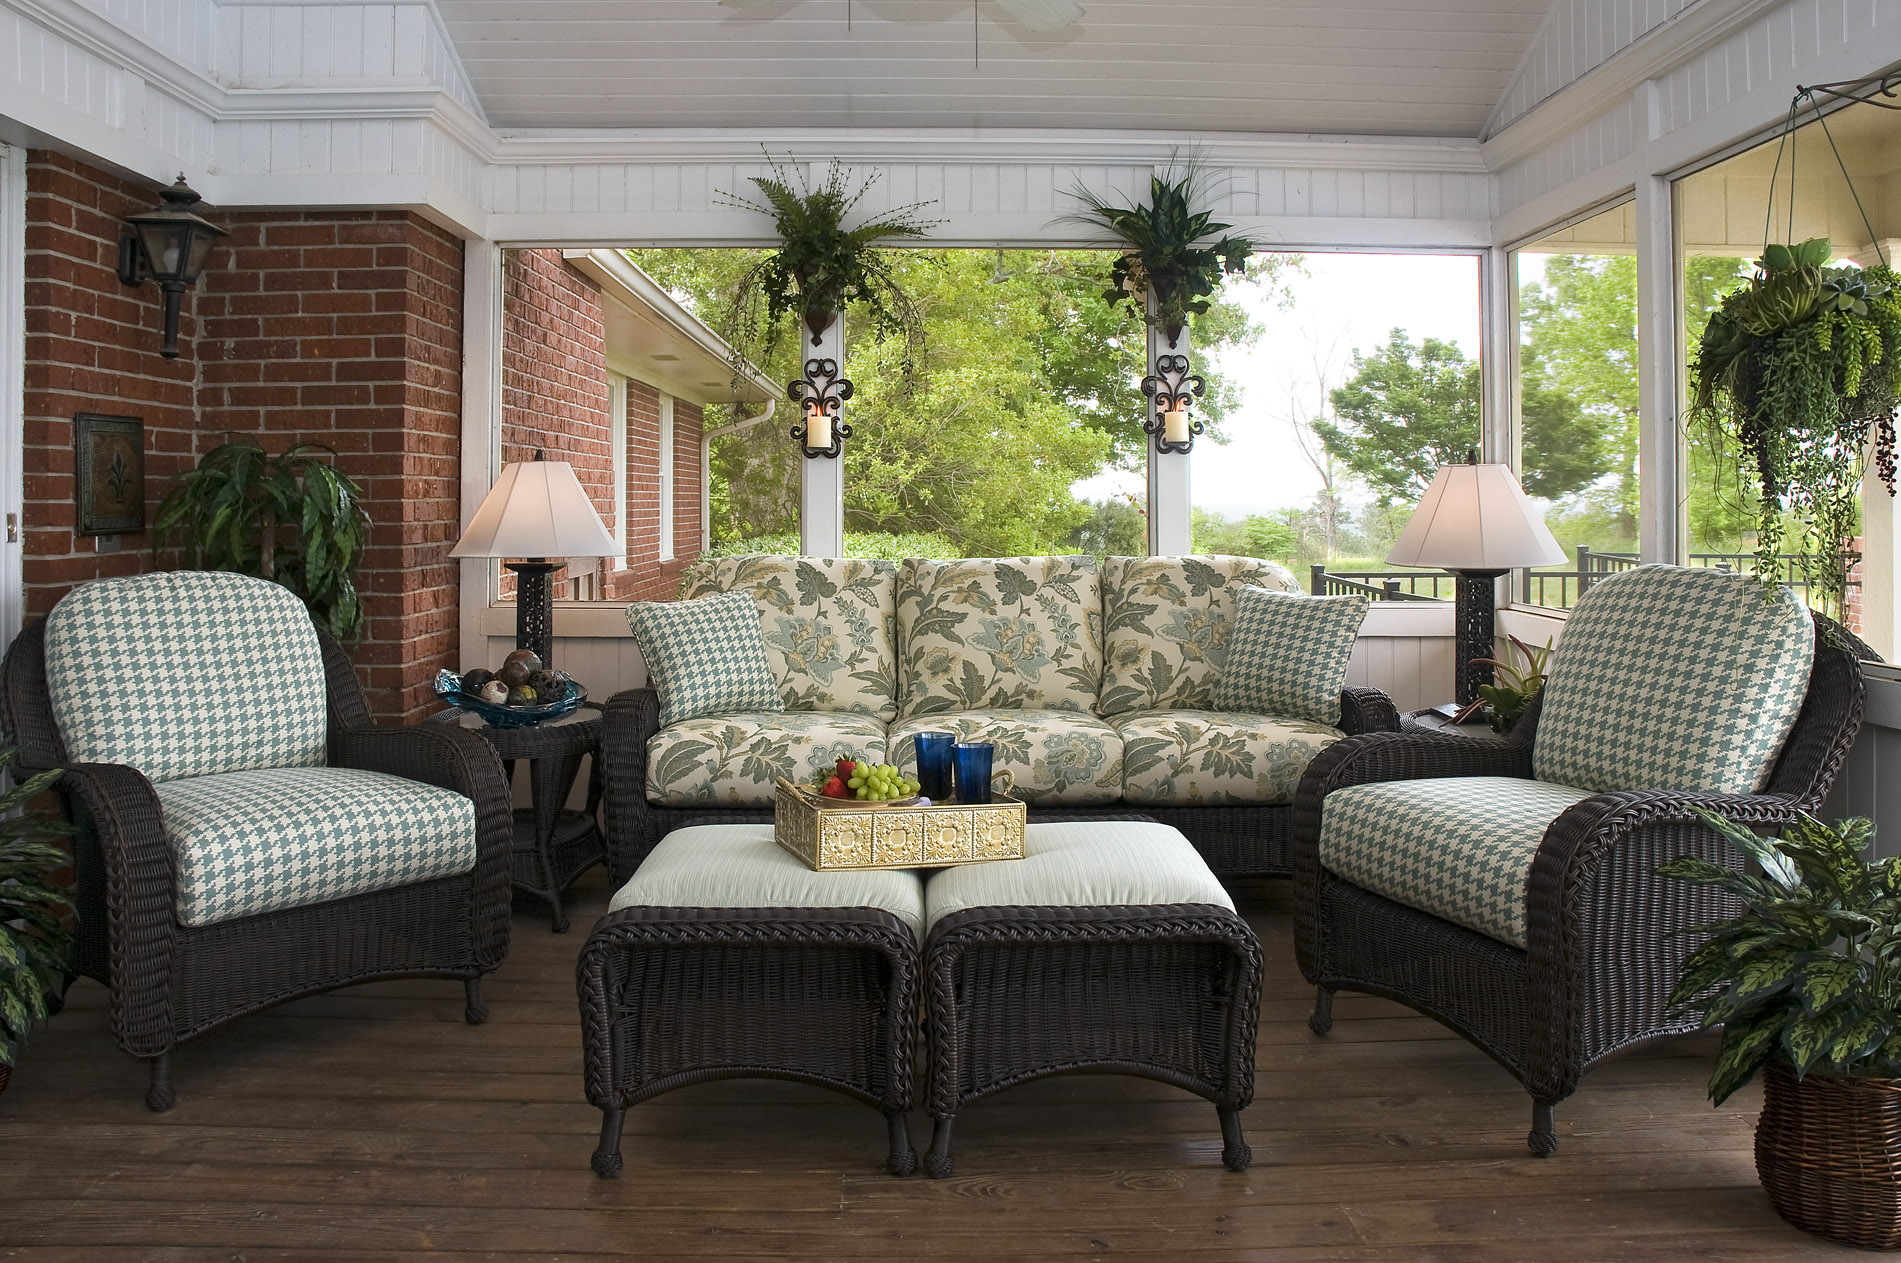 Outdoor Decorating at its finest | Catherine Pulcine - CPI ... on Outdoor Living Wicker id=18135